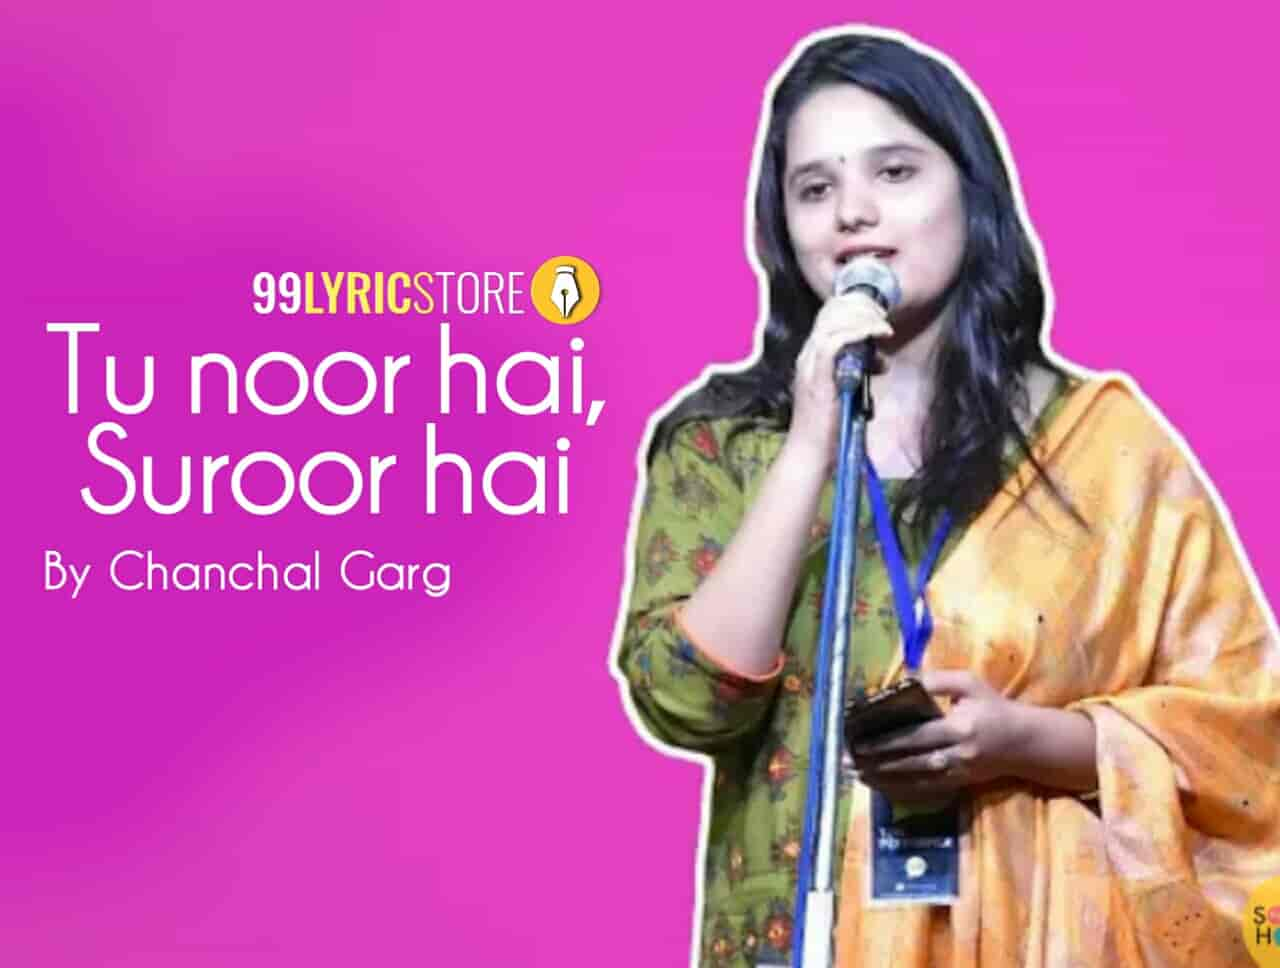 This beautiful Poetry 'Suroor Hai' has written and performed by Chanchal Garg on the stage of The Social House's Plateform.